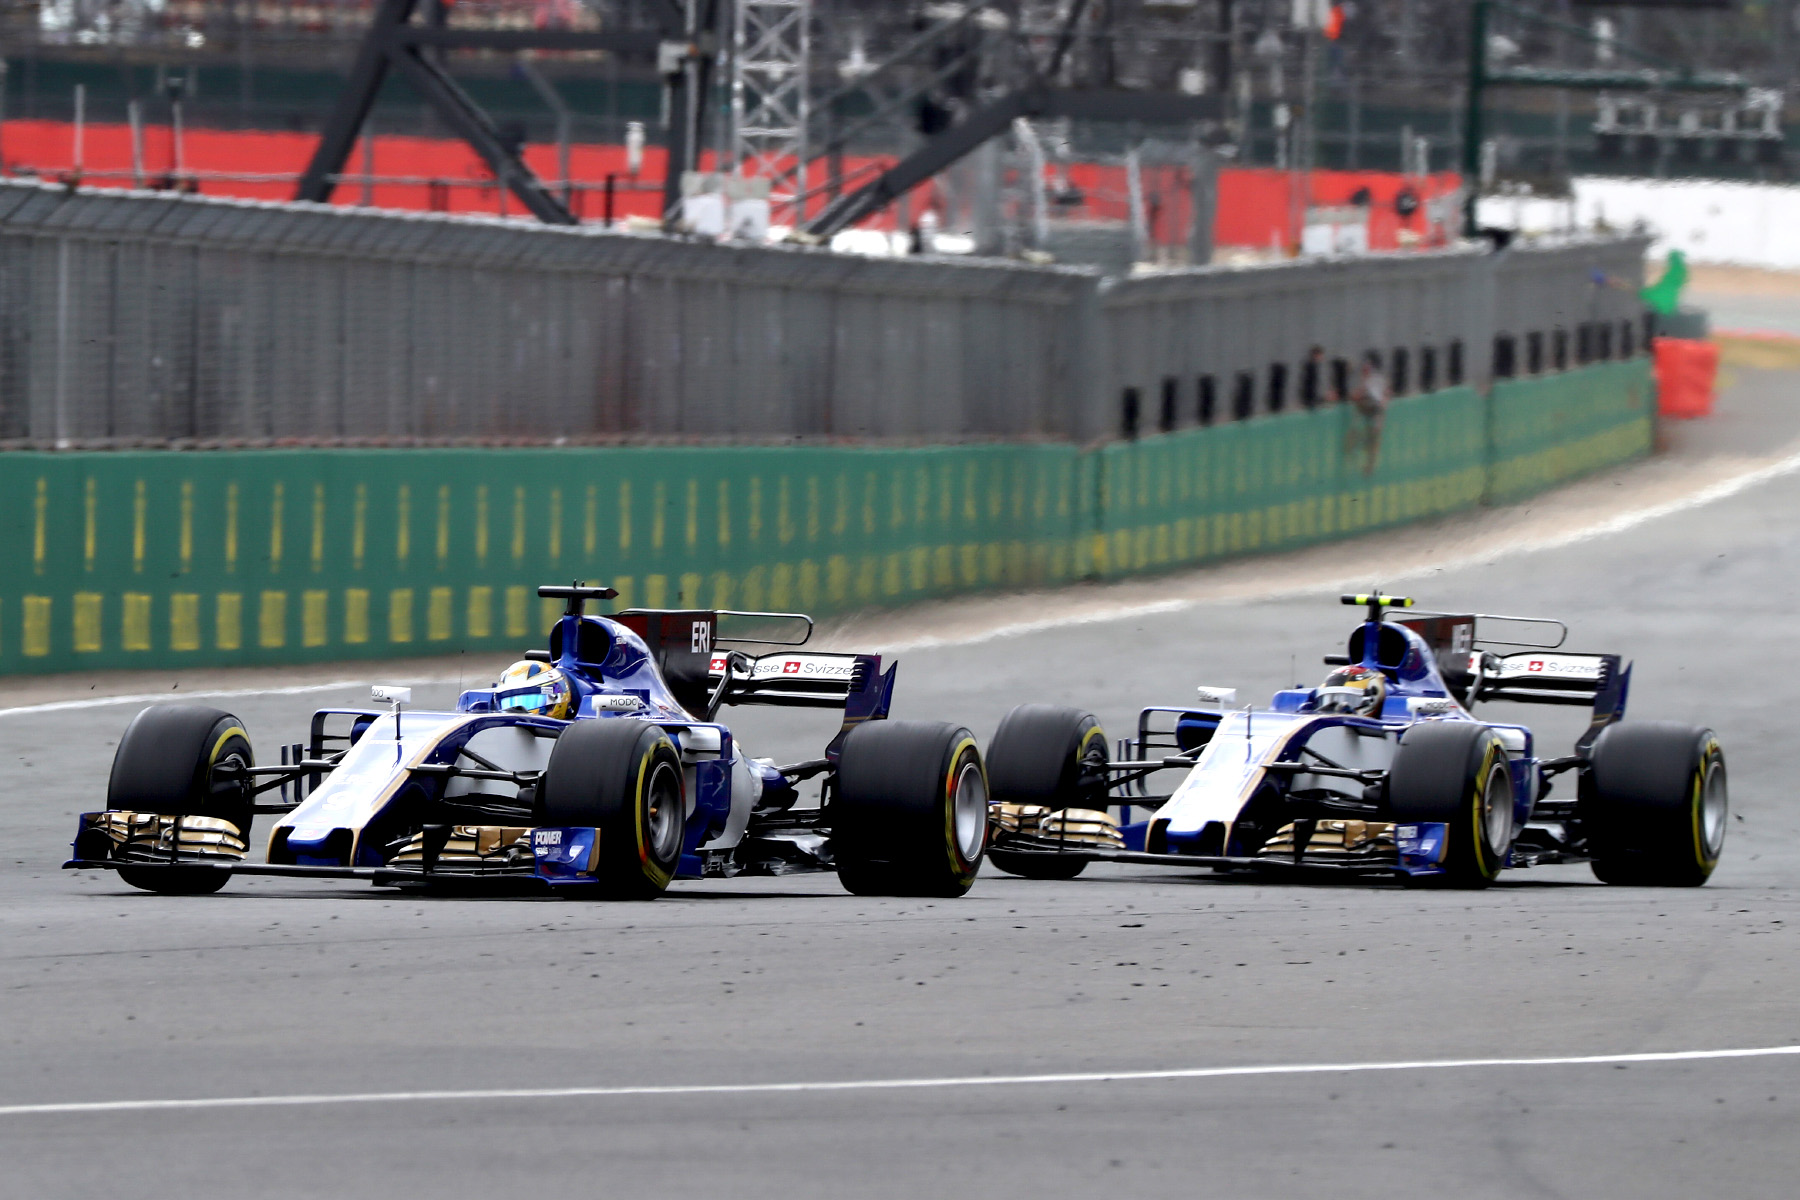 Sauber drivers Pascal Wehrlein and Marcus Ericsson meet on track at the British Grand Prix.